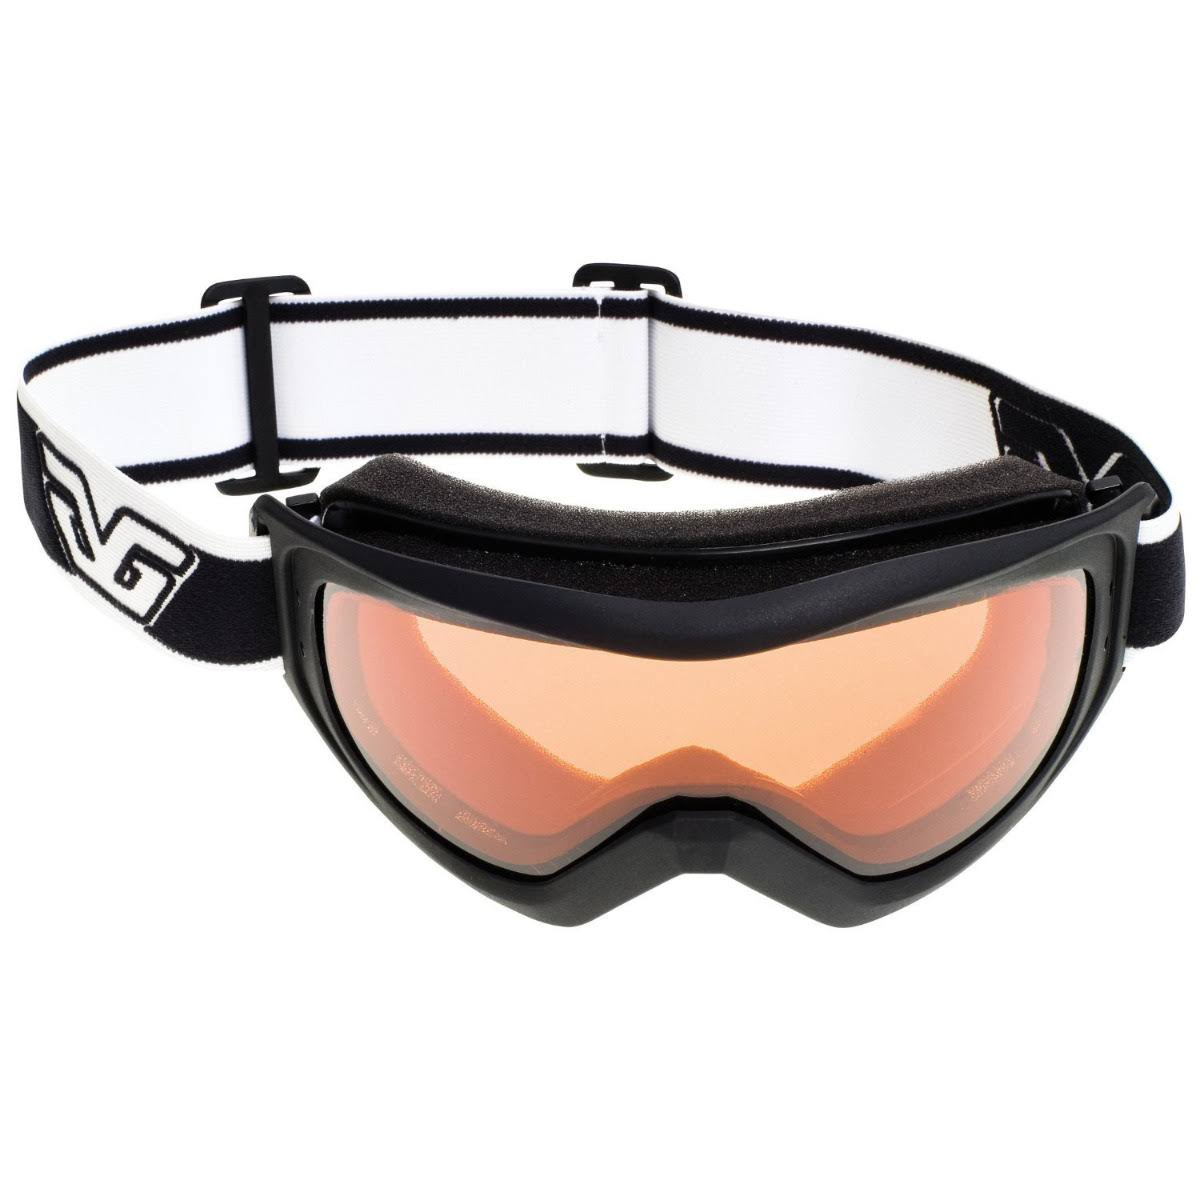 Gordini Crest Classic Series Goggles - Black and Gold